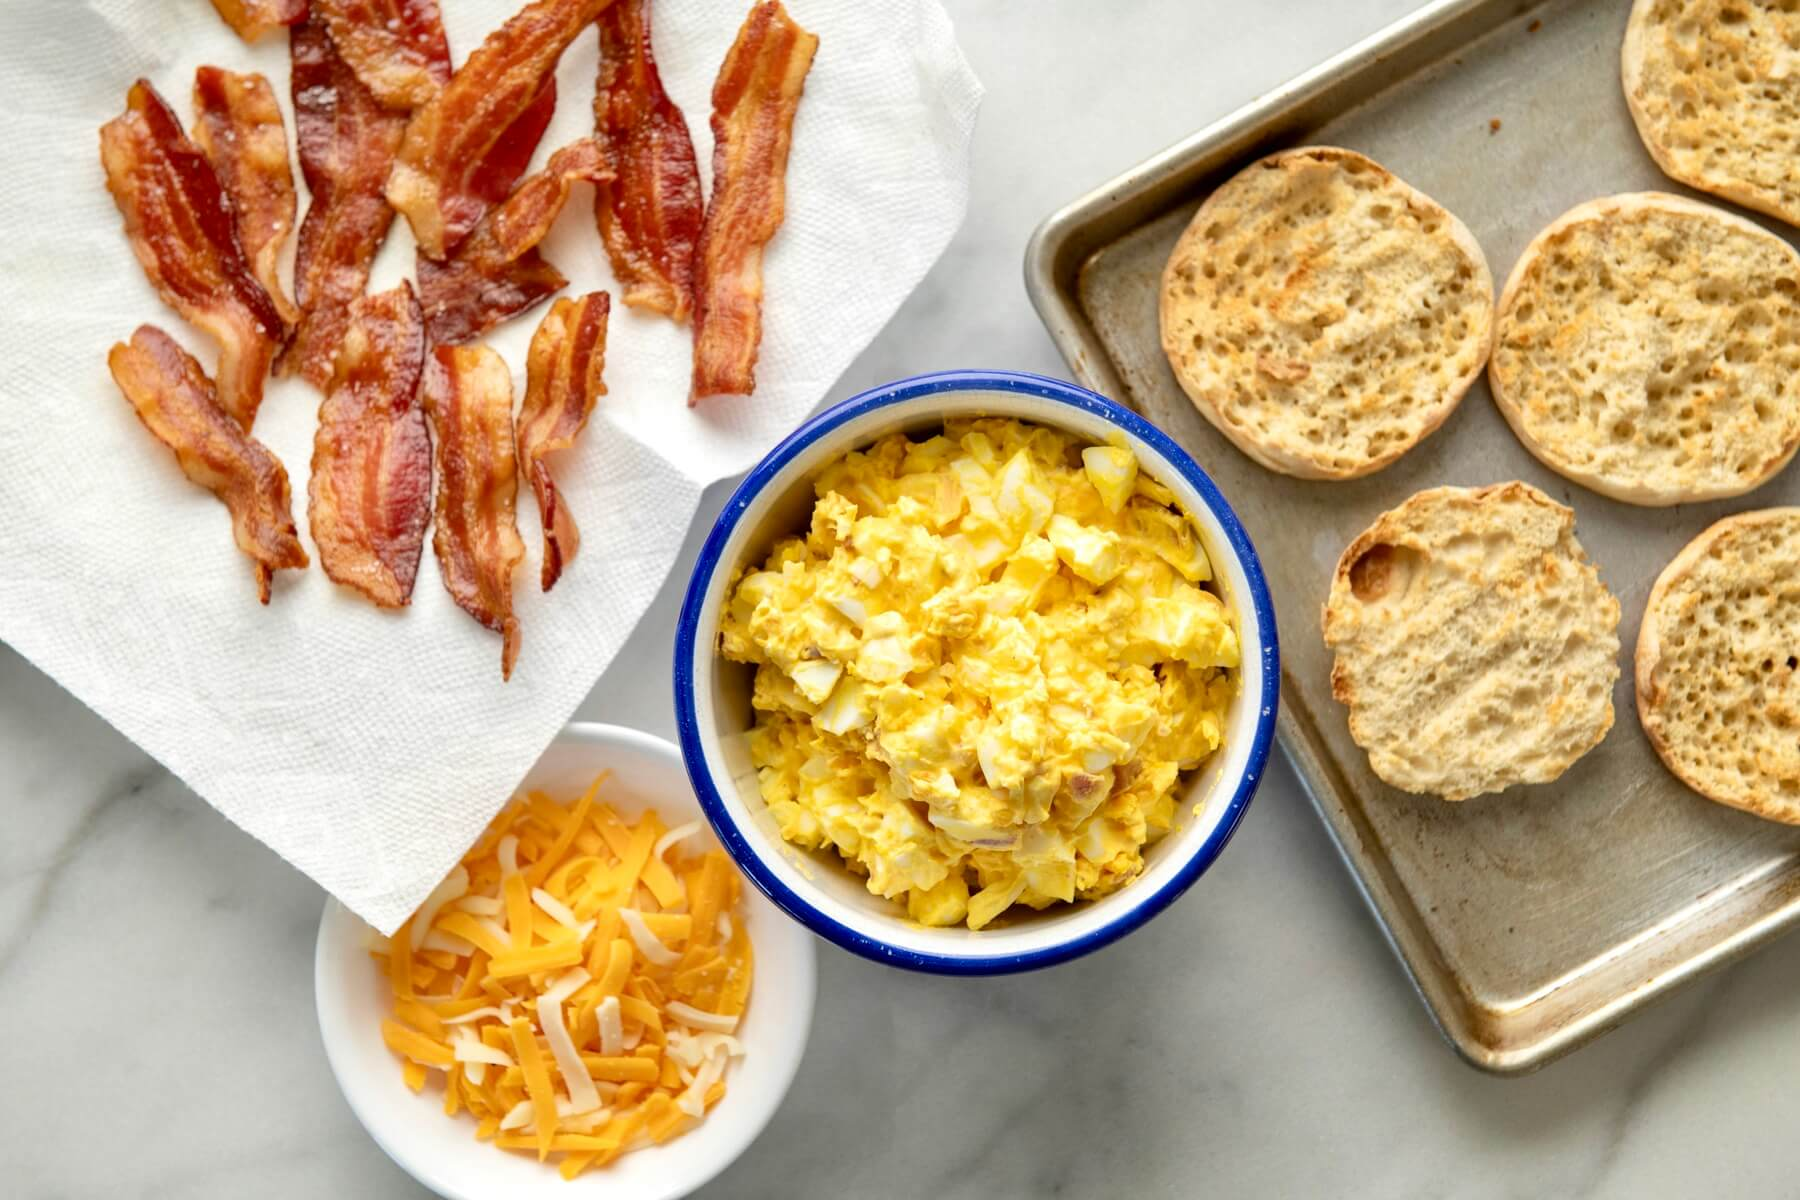 Not your usual egg sandwich, the flavor-packed topping can be prepared in advance and then baked on the bread when ready to eat. Crunchy, creamy, and utterly delicious!